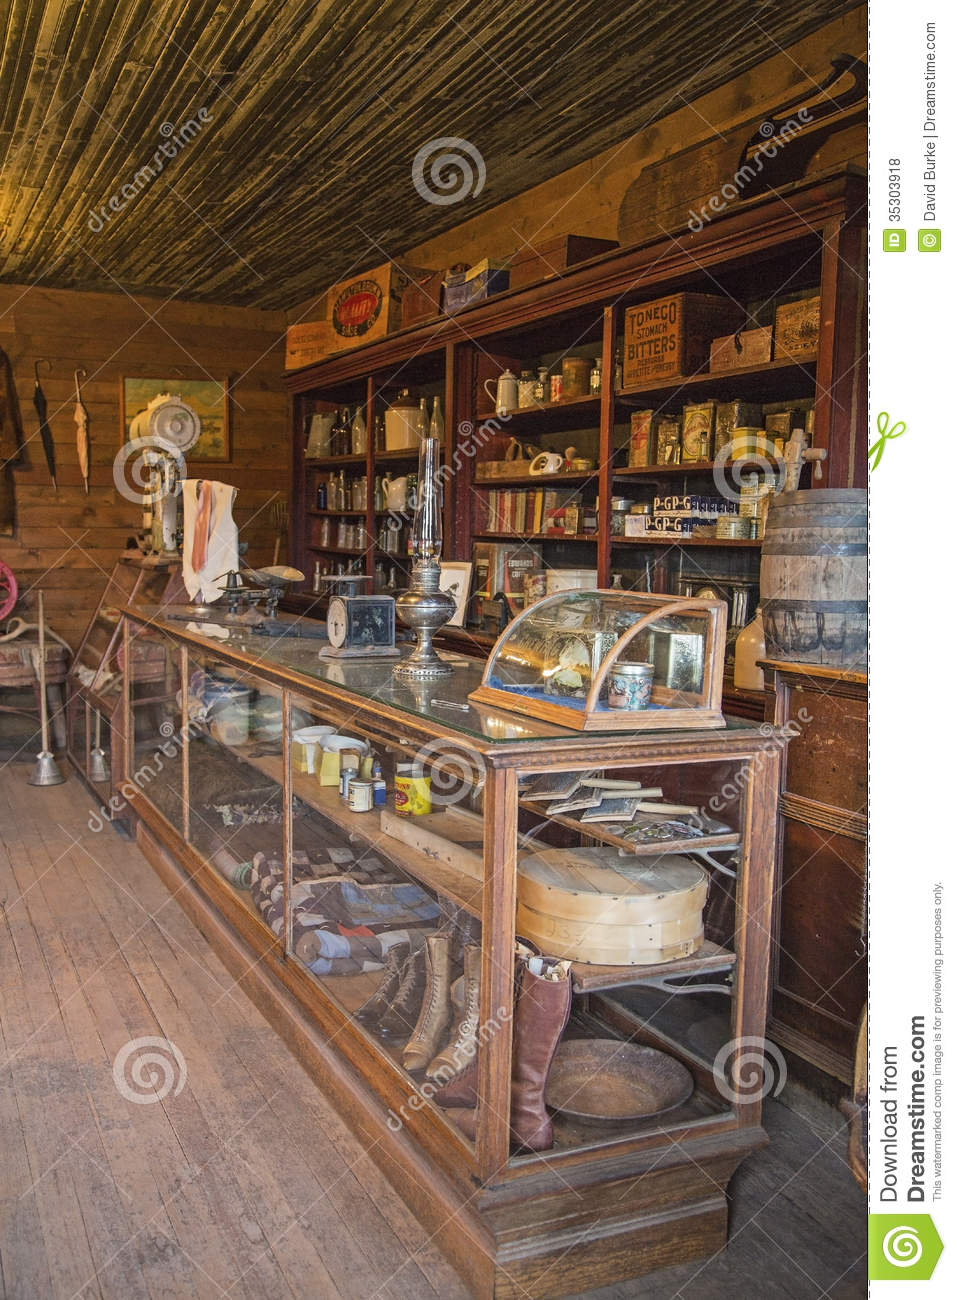 This rustic retail display and western town store sold everything from